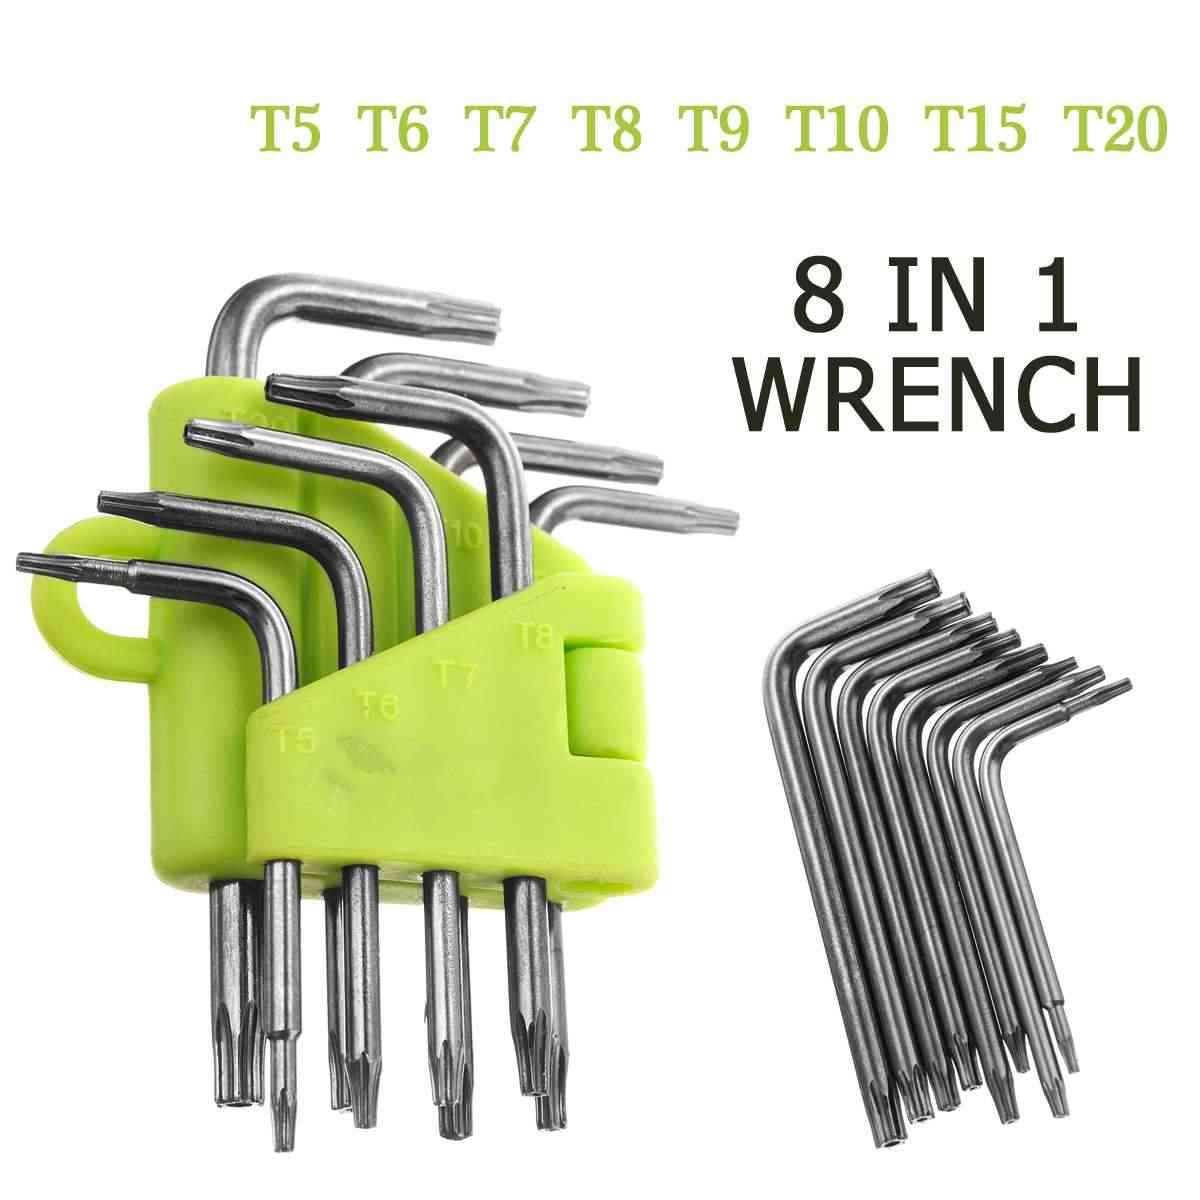 8pcs Star Torx Wrench Spanner Set T5 T6 T7 T8 T9 T10 T15 T20 Box End Wrench Screwdriver Bits Professional Hand Tools